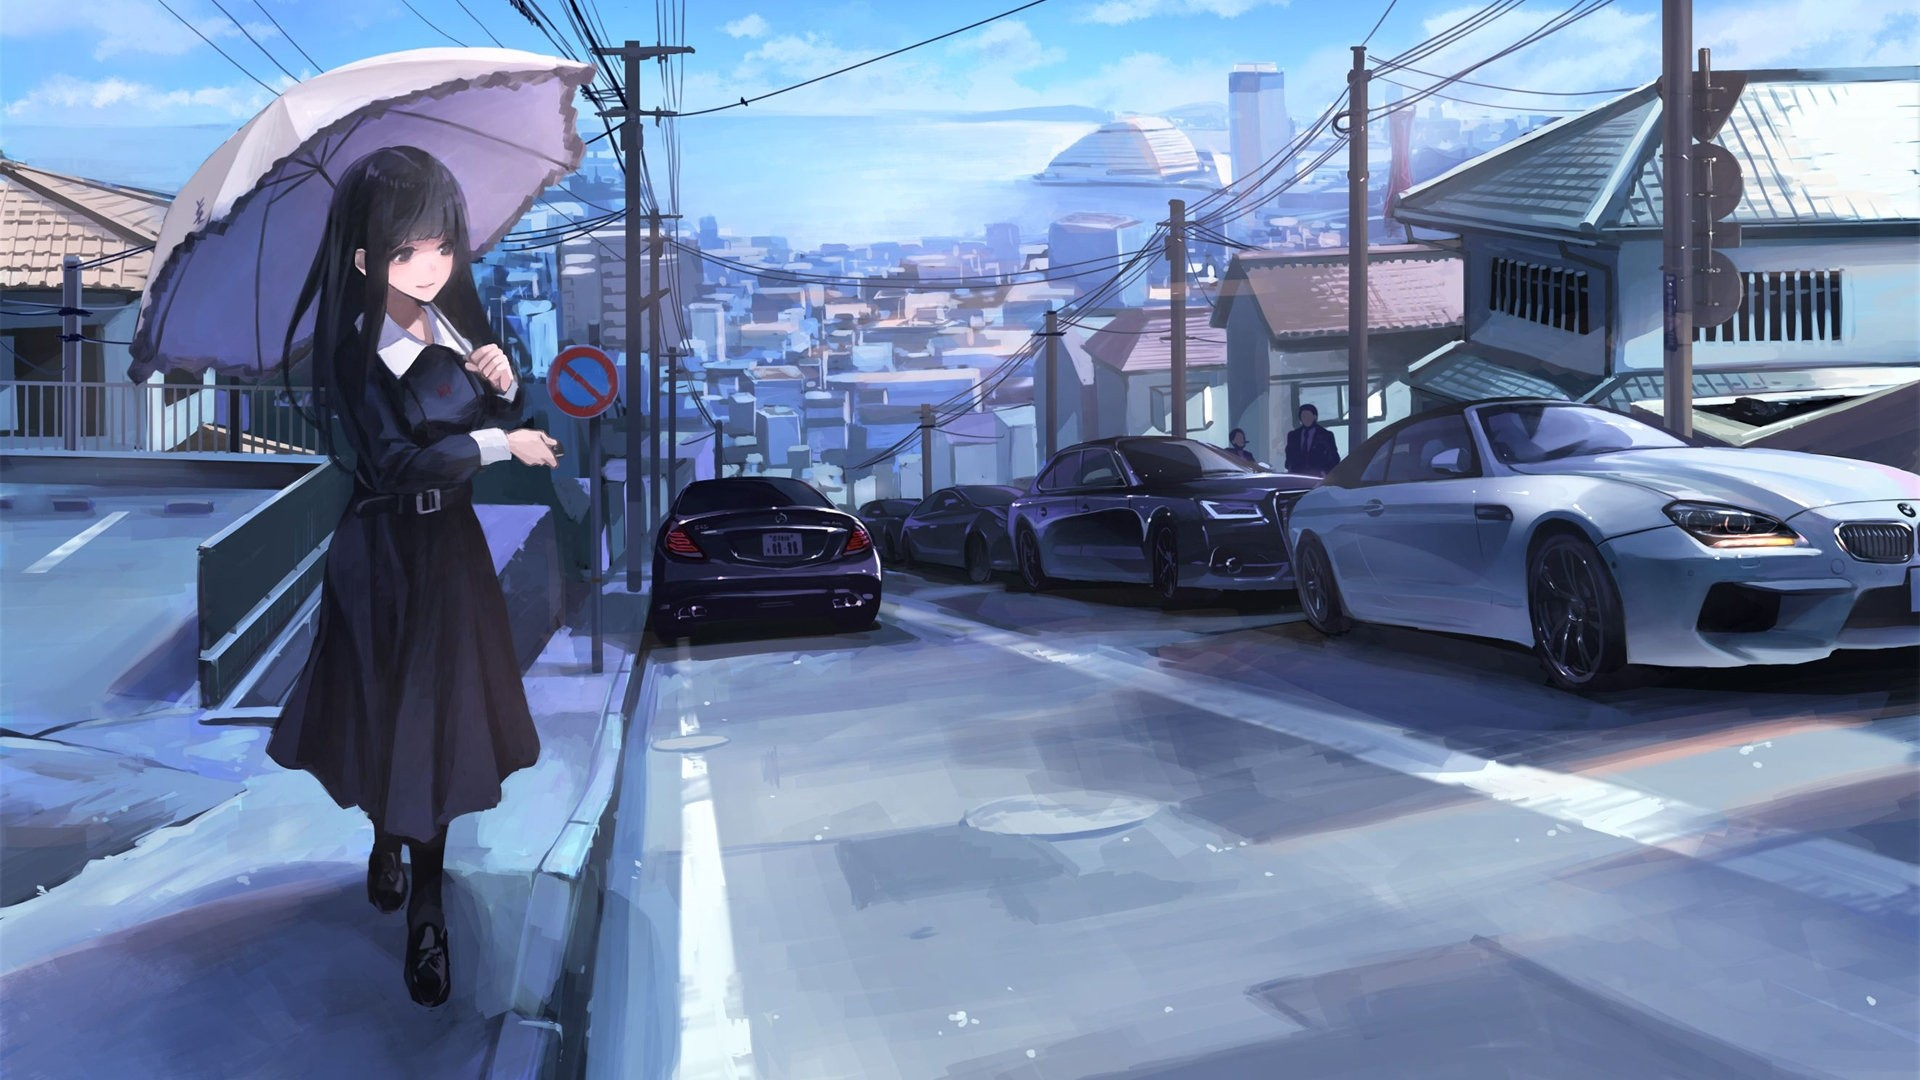 Anime Girl With Car Wallpaper For Pc